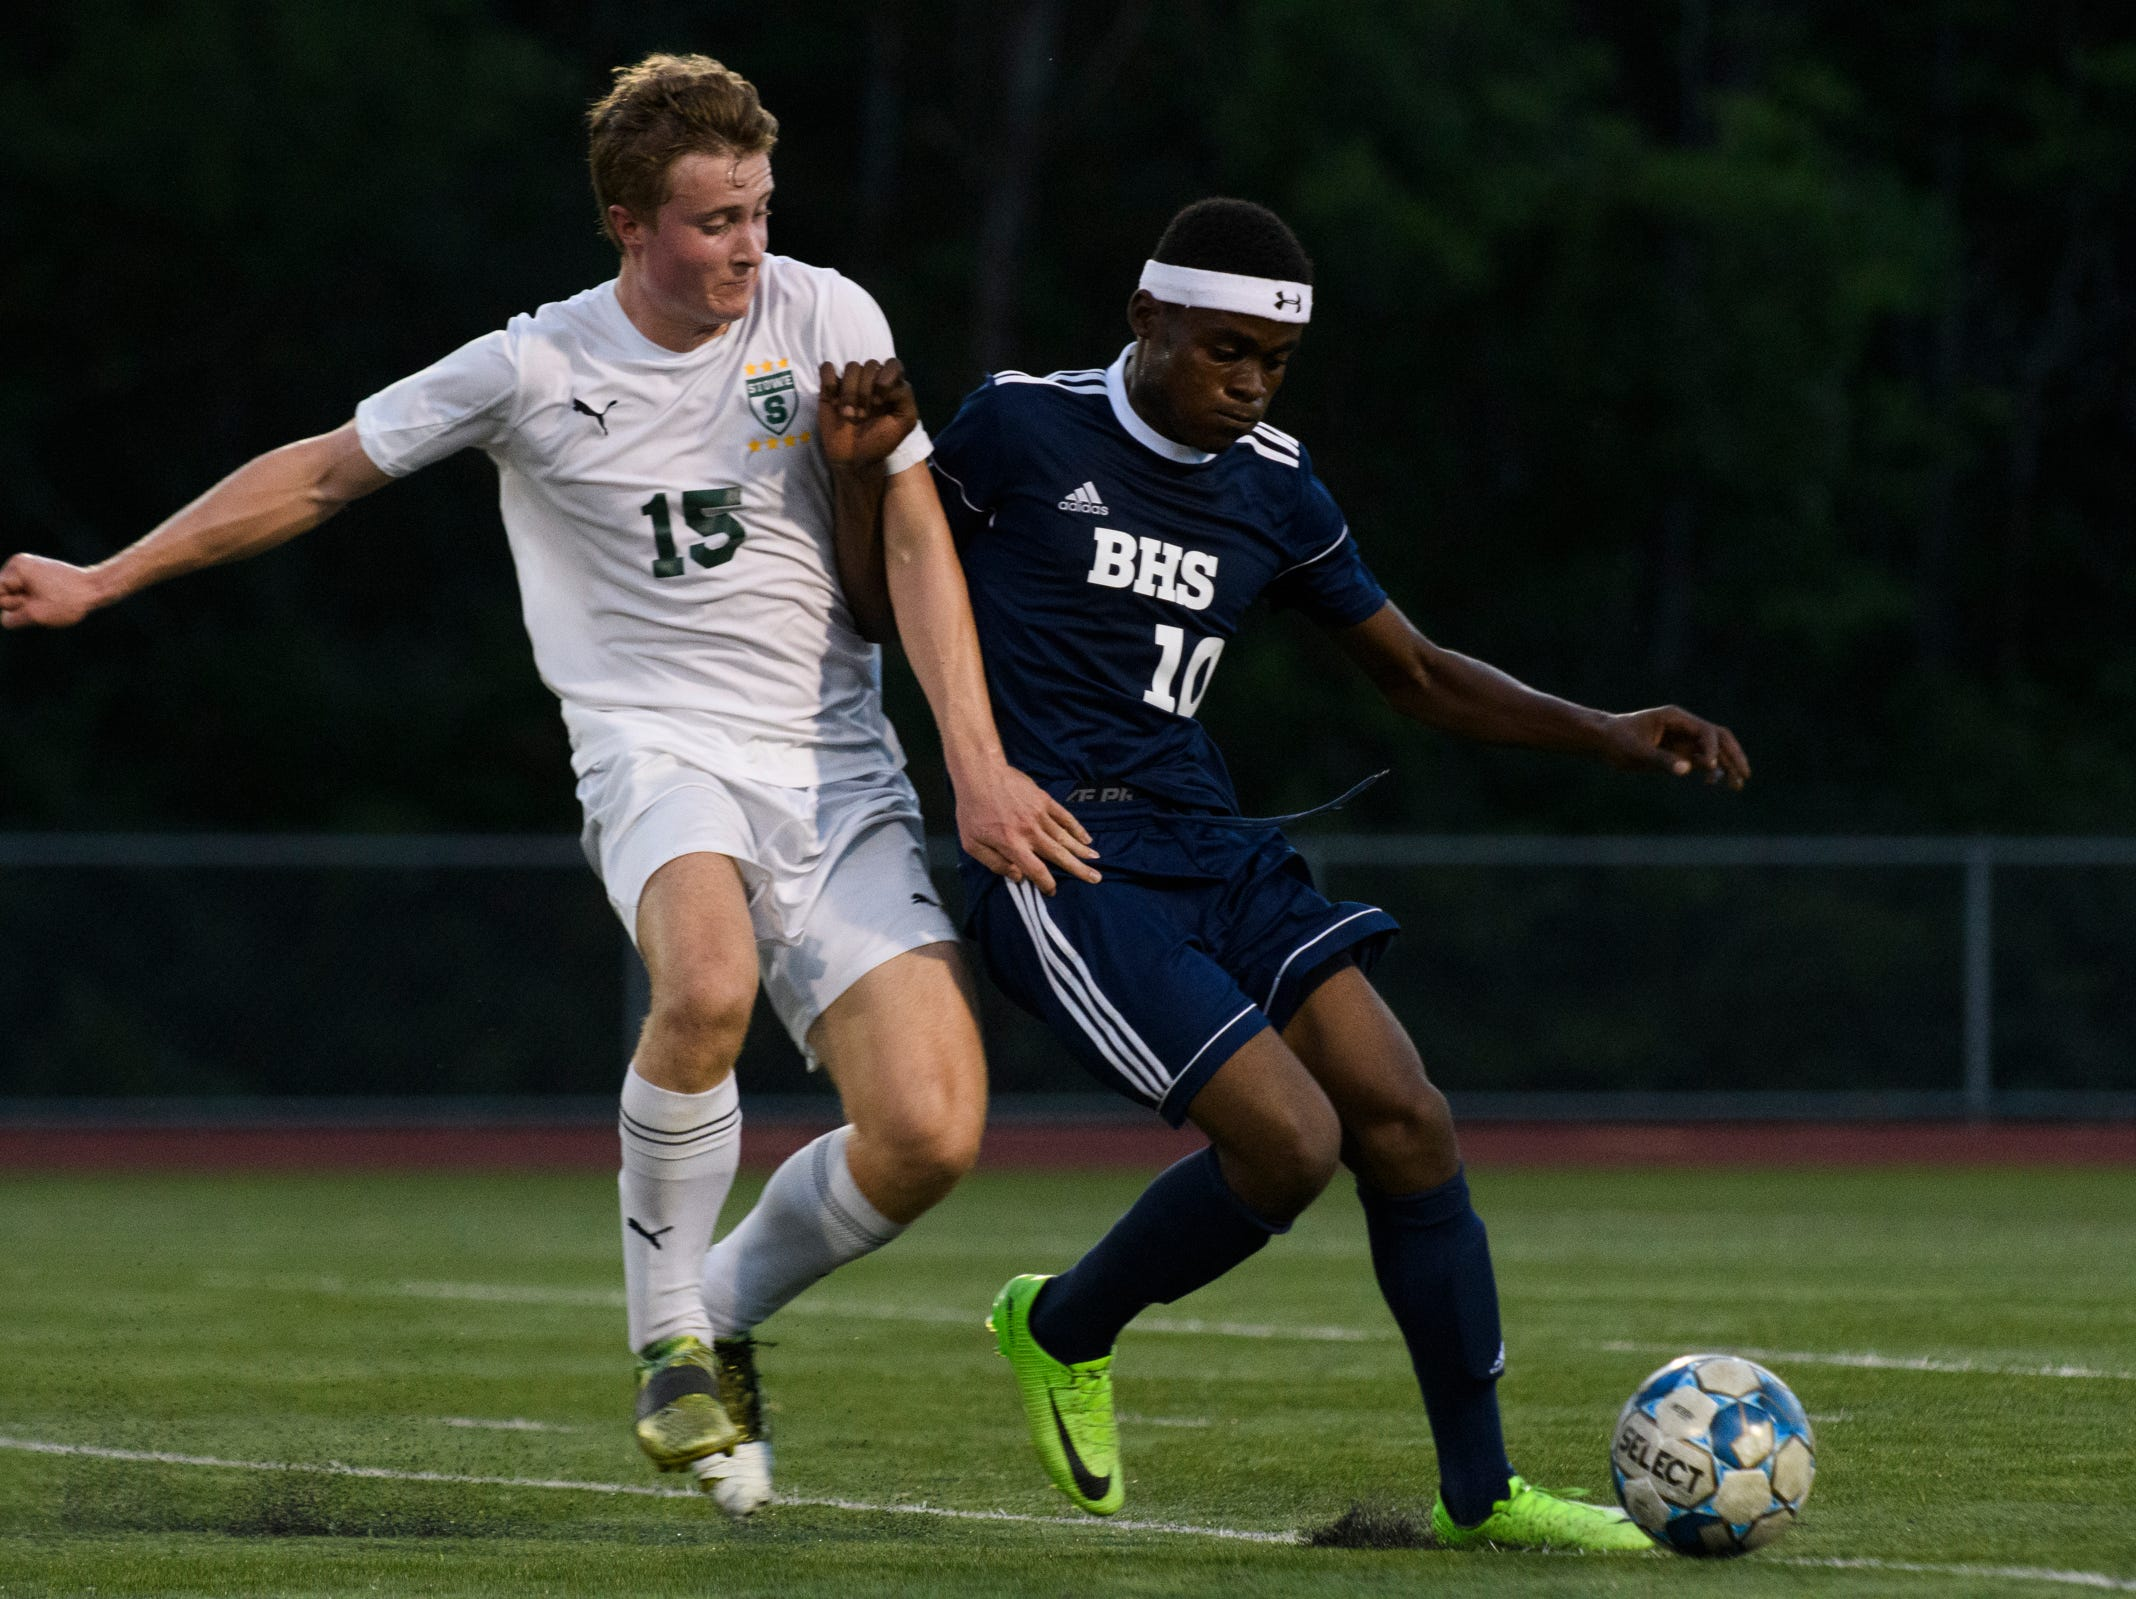 Stowe's Jace Boerger (15) battles for the ball with Burlington's Will Badibanga (10) during the boys soccer game between Stowe and Burlington at Buck Hard field on Wednesday night September 5, 2018 in Burlington.